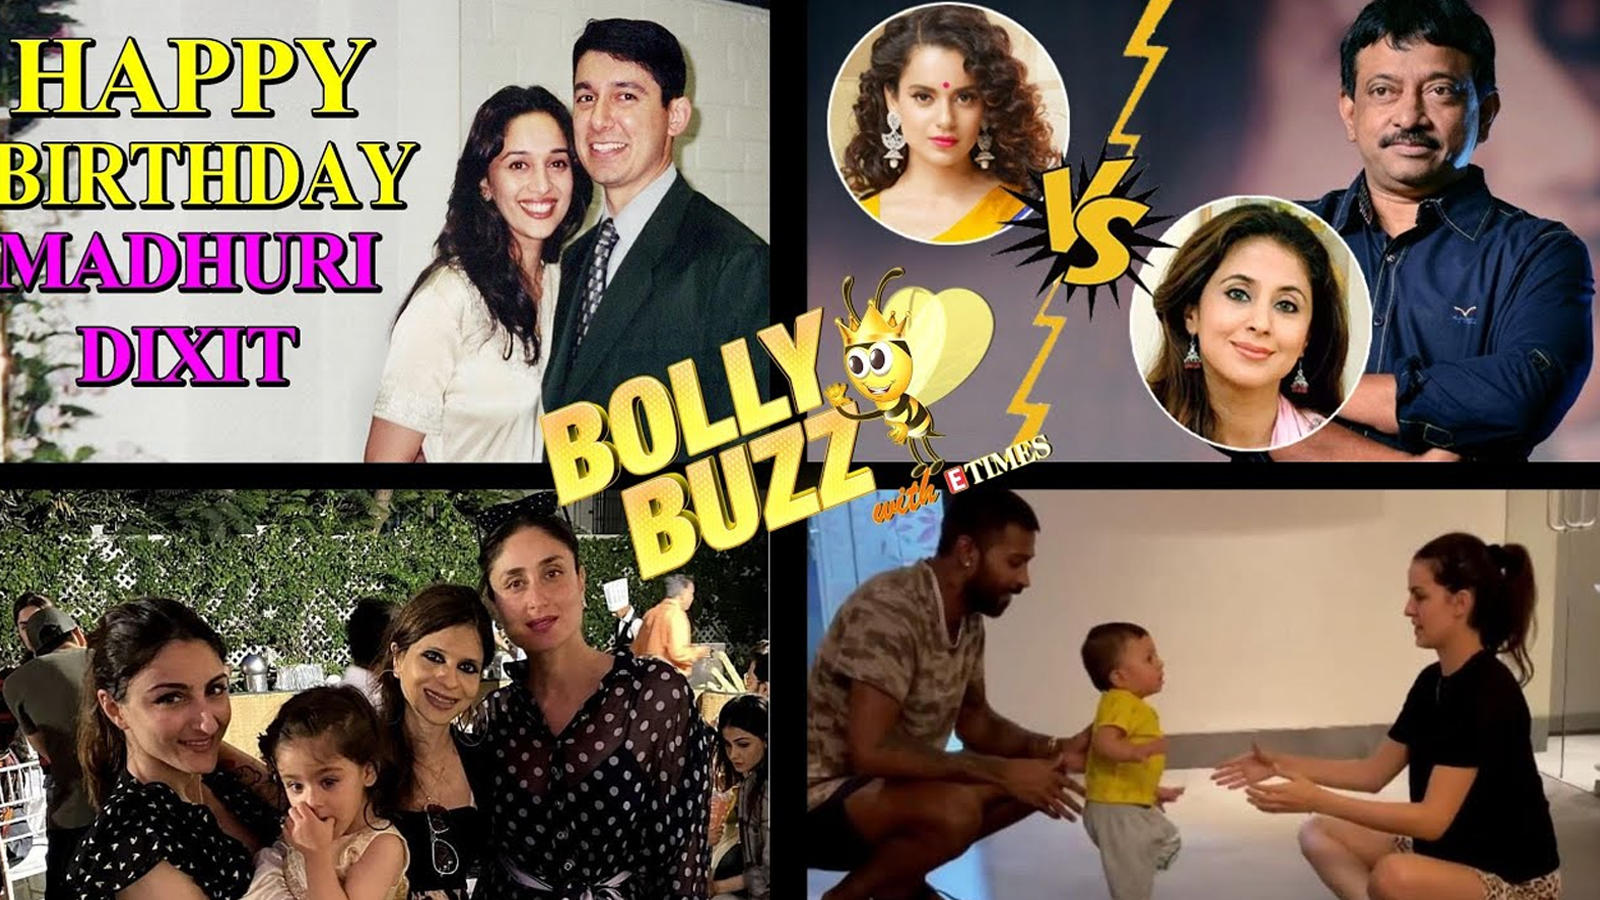 bolly-buzz-madhuri-dixits-birthday-wish-rgv-on-kangana-vs-urmila-natasa-hardiks-cute-video